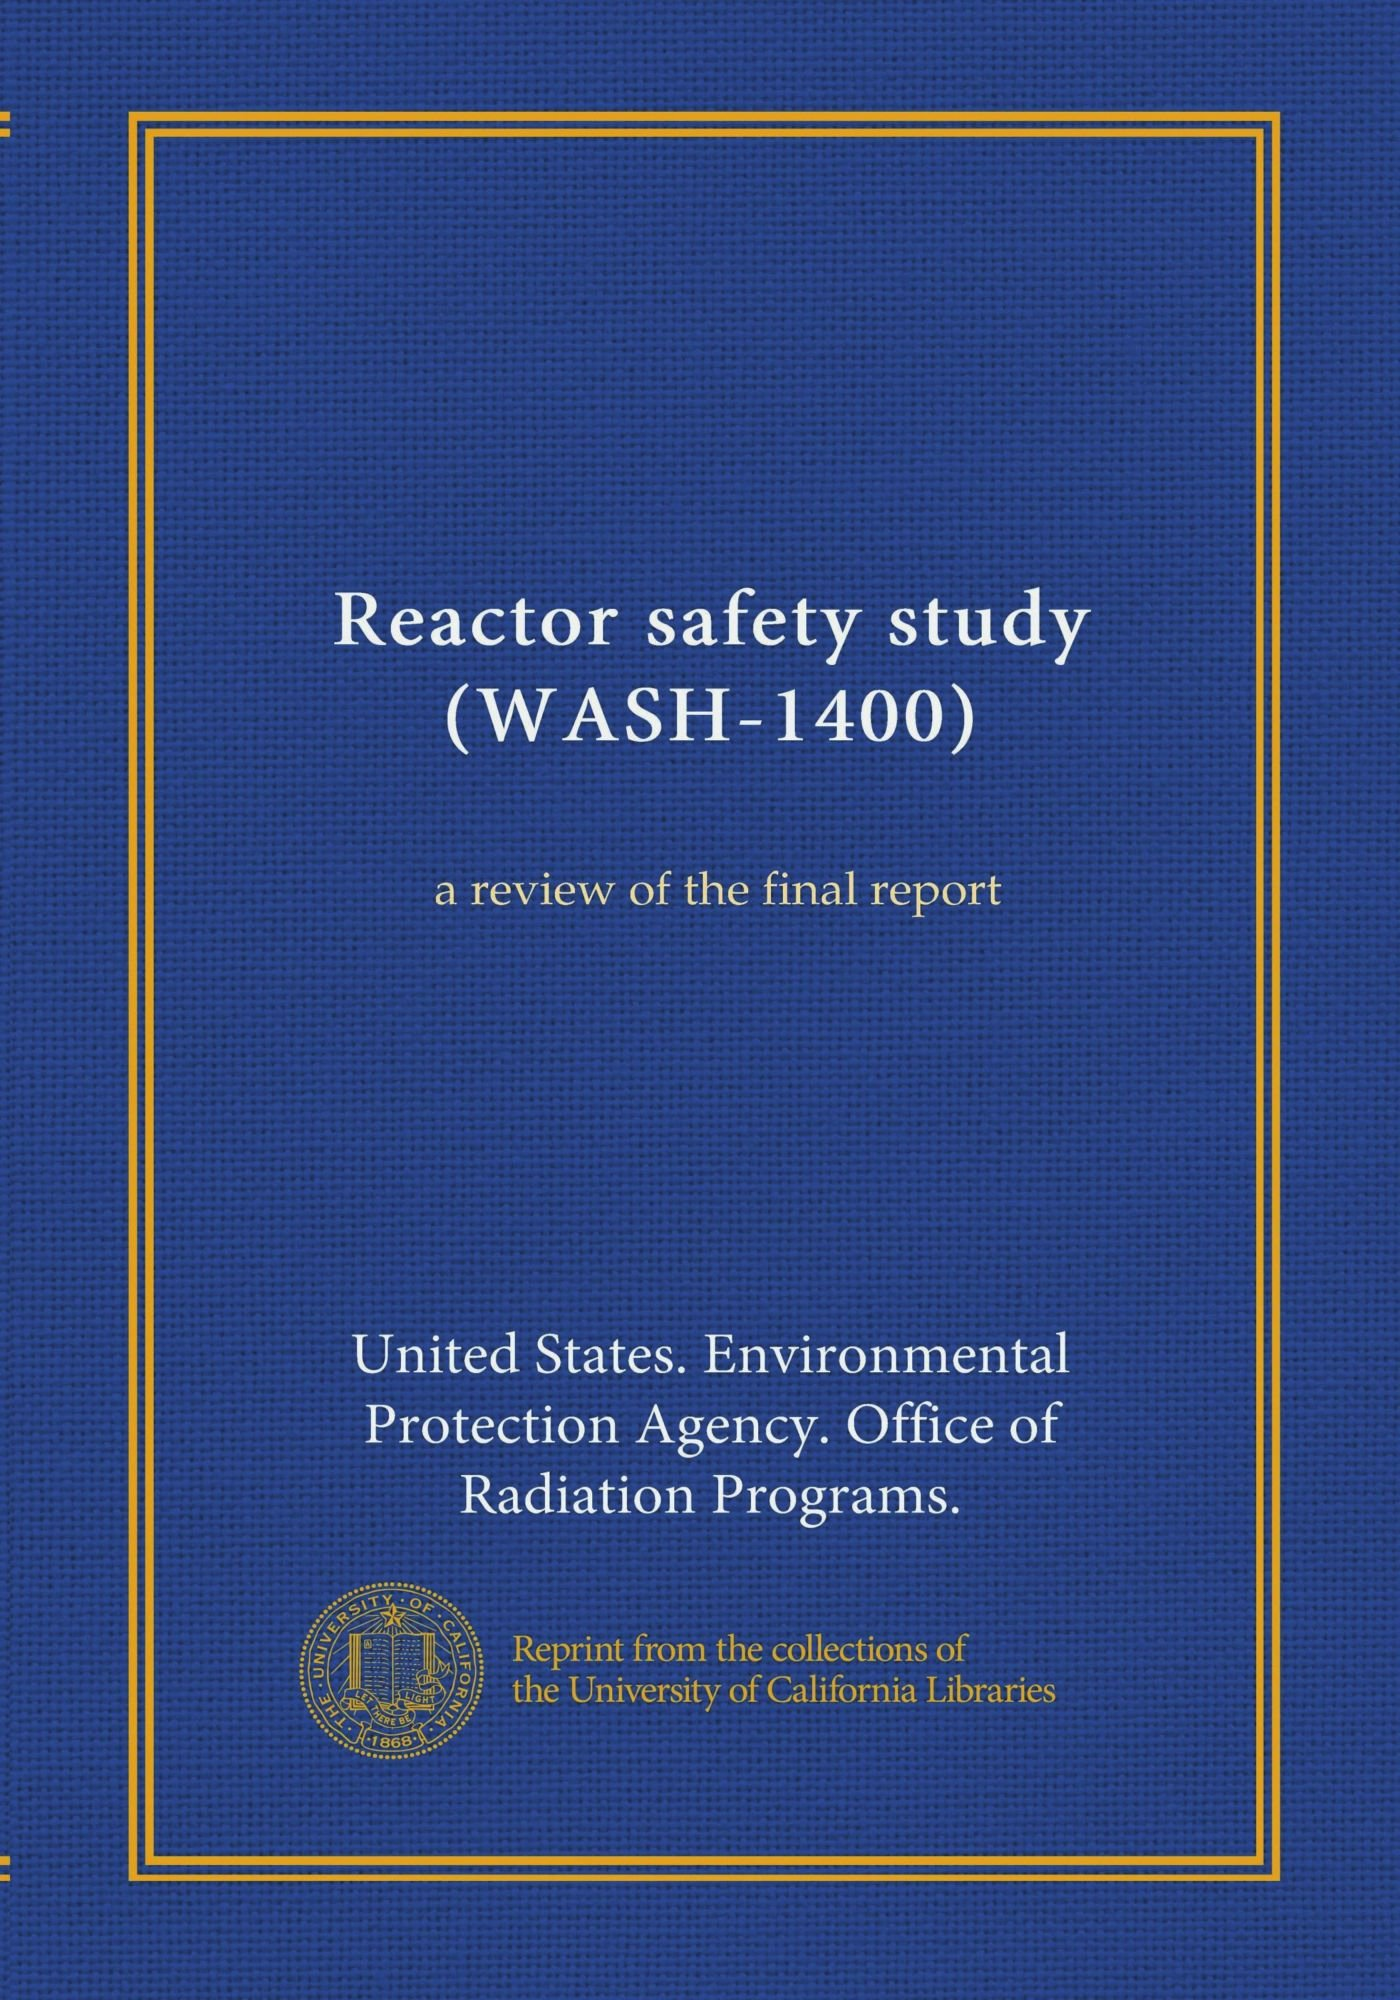 Reactor safety study (WASH-1400) (Vol-1): a review of the final report ebook